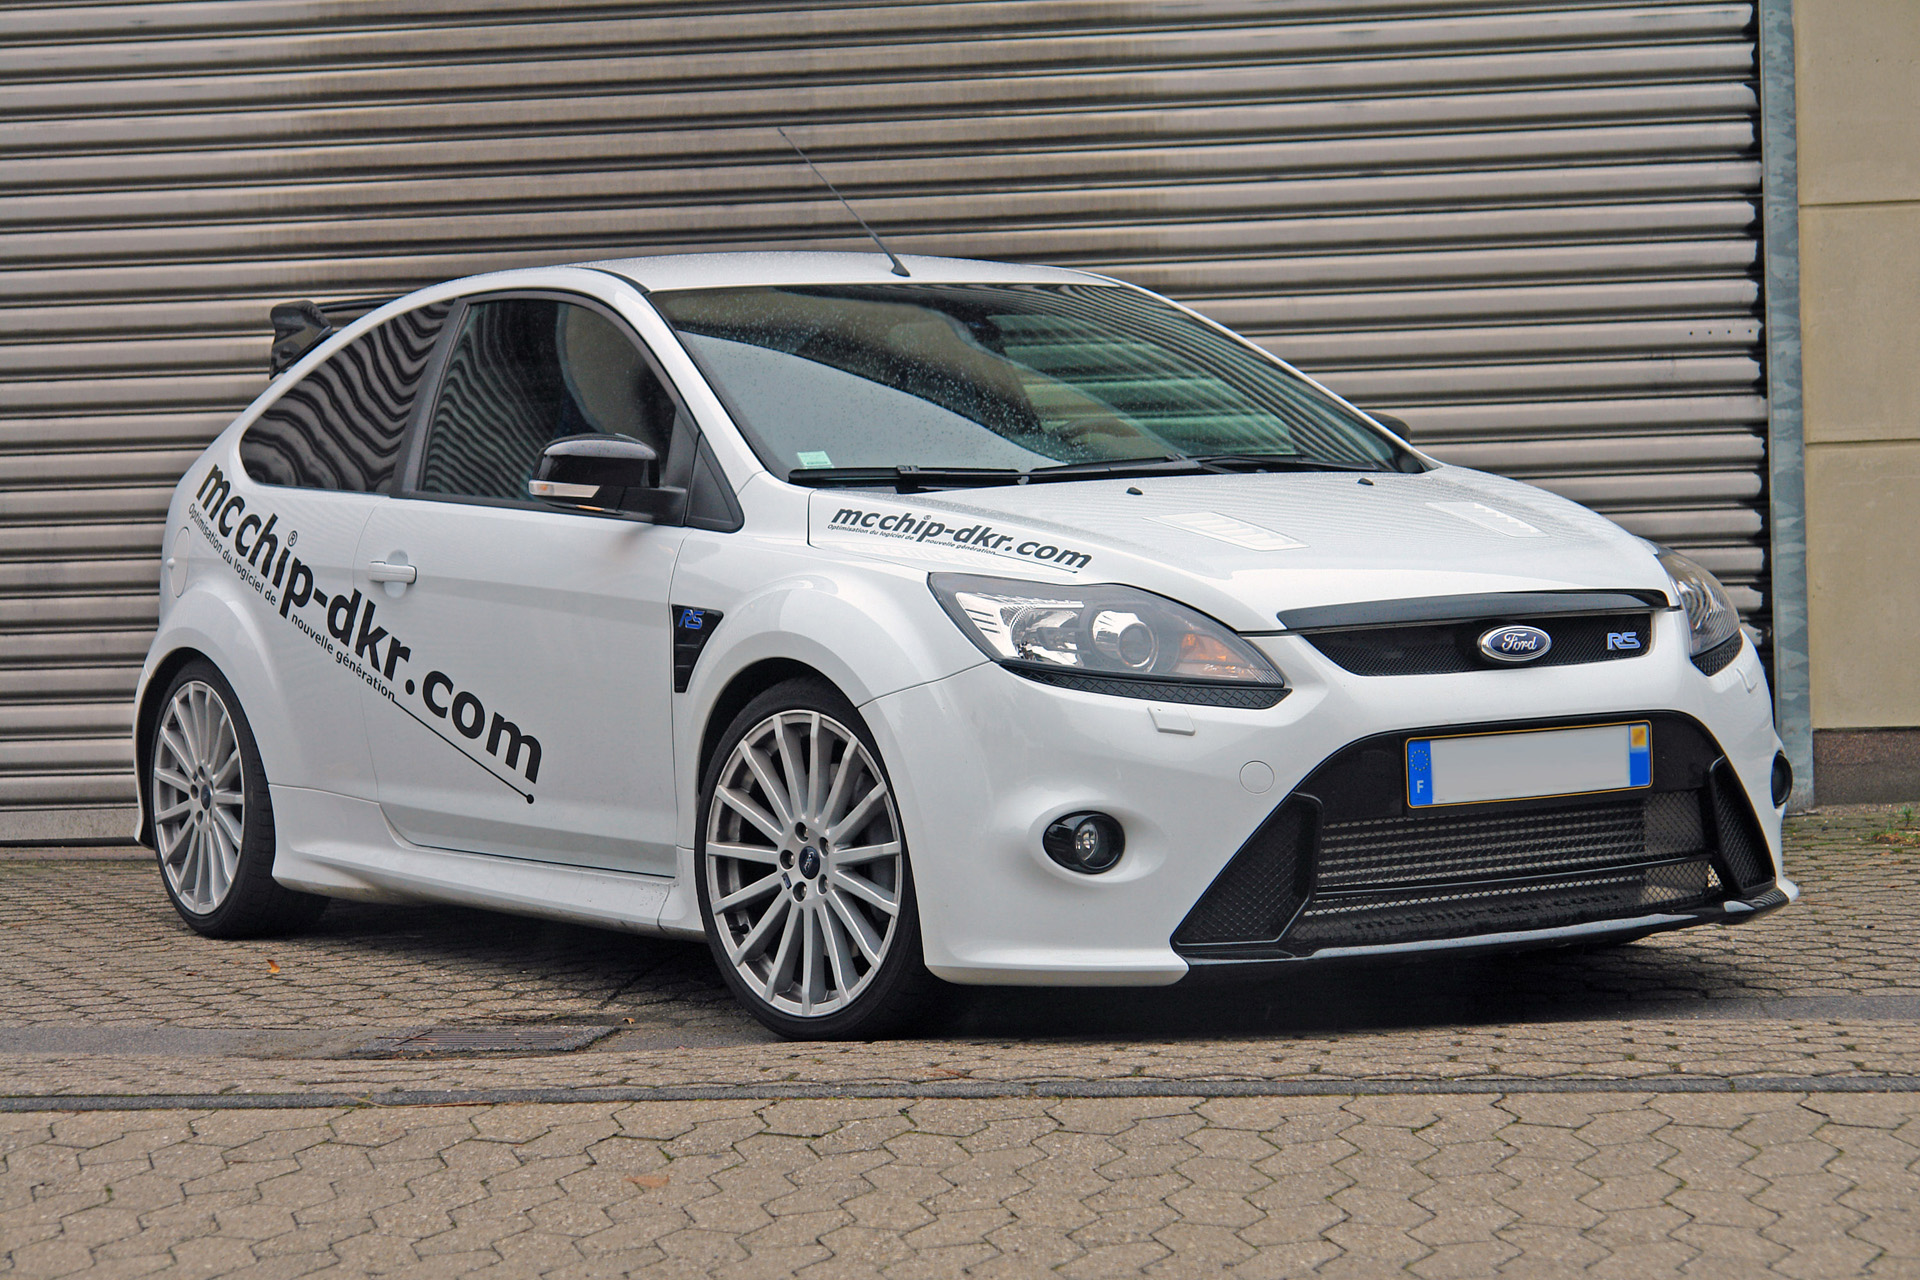 McChip-Dkr Ford Focus RS photo 70151